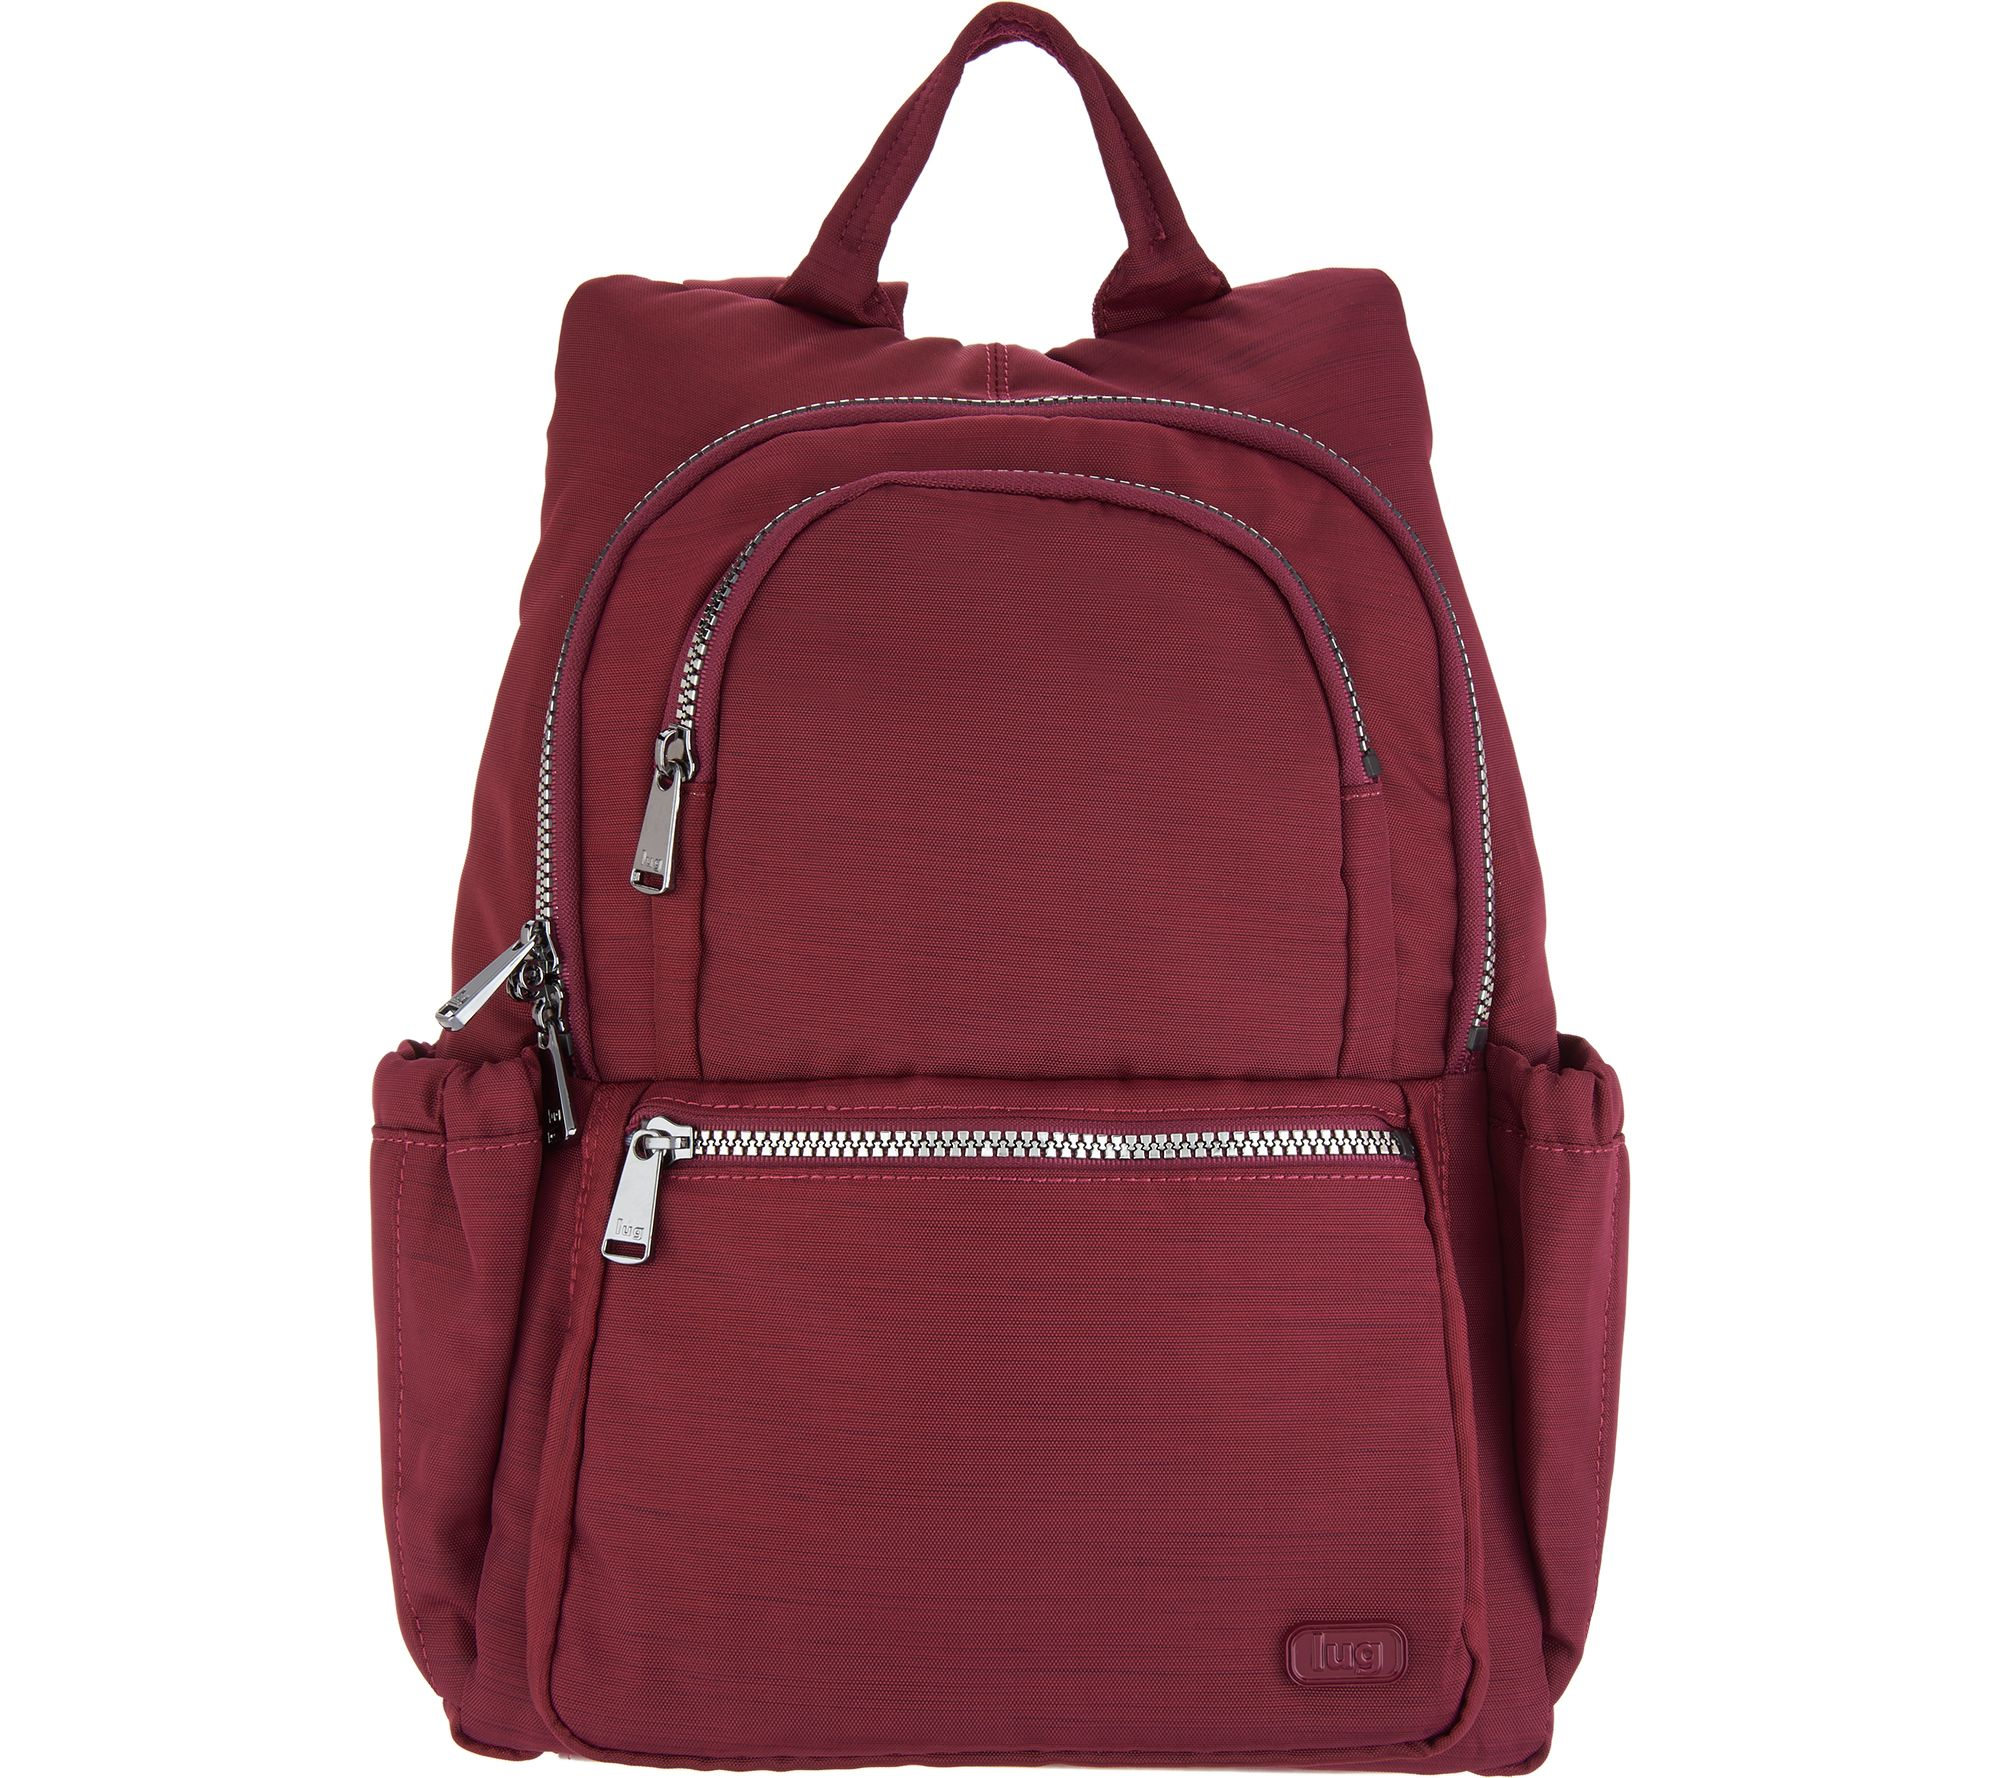 Lug RFID Mini Backpack - Hatchback - Page 1 — QVC.com fb5748b76631f